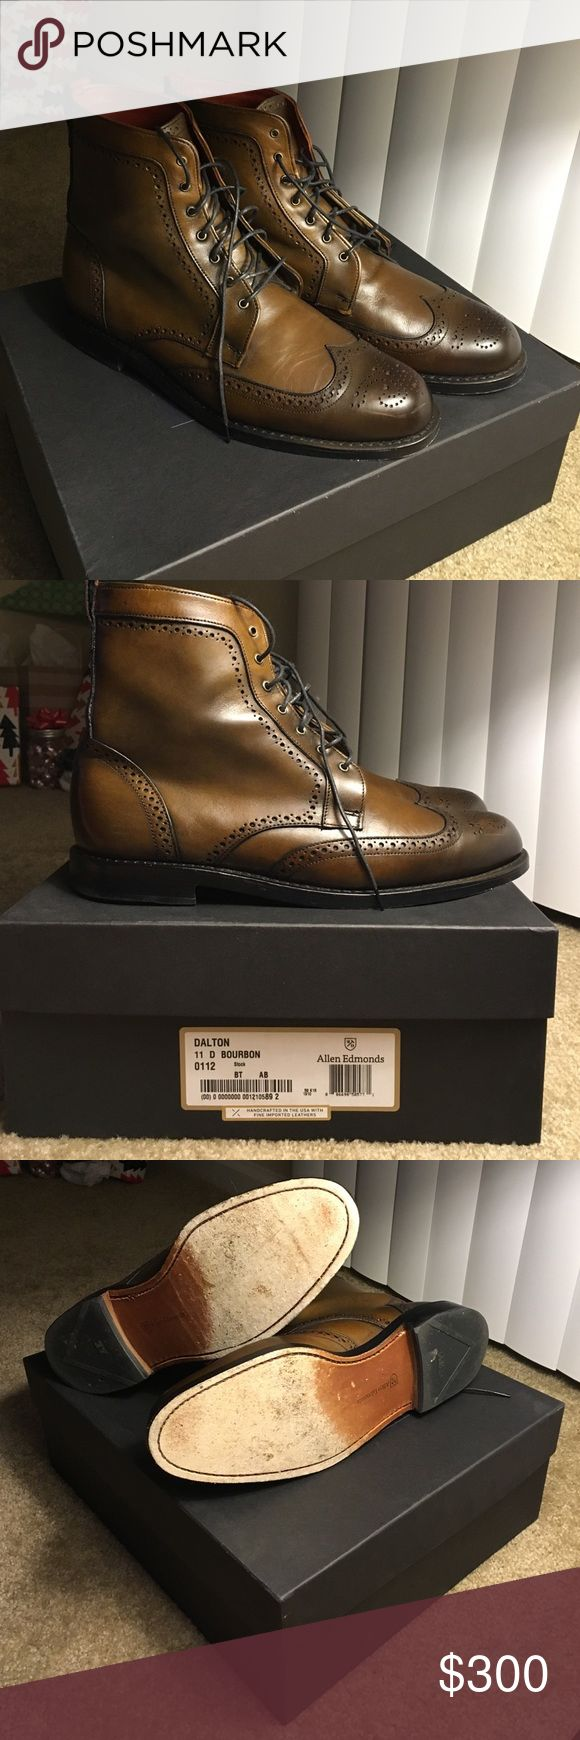 Allen Edmonds Dalton Wingtip (11D Bourbon Calf) Gently used pair of Allen Edmonds Dalton Wing Tip Boots. Allen Edmonds Shoes Boots